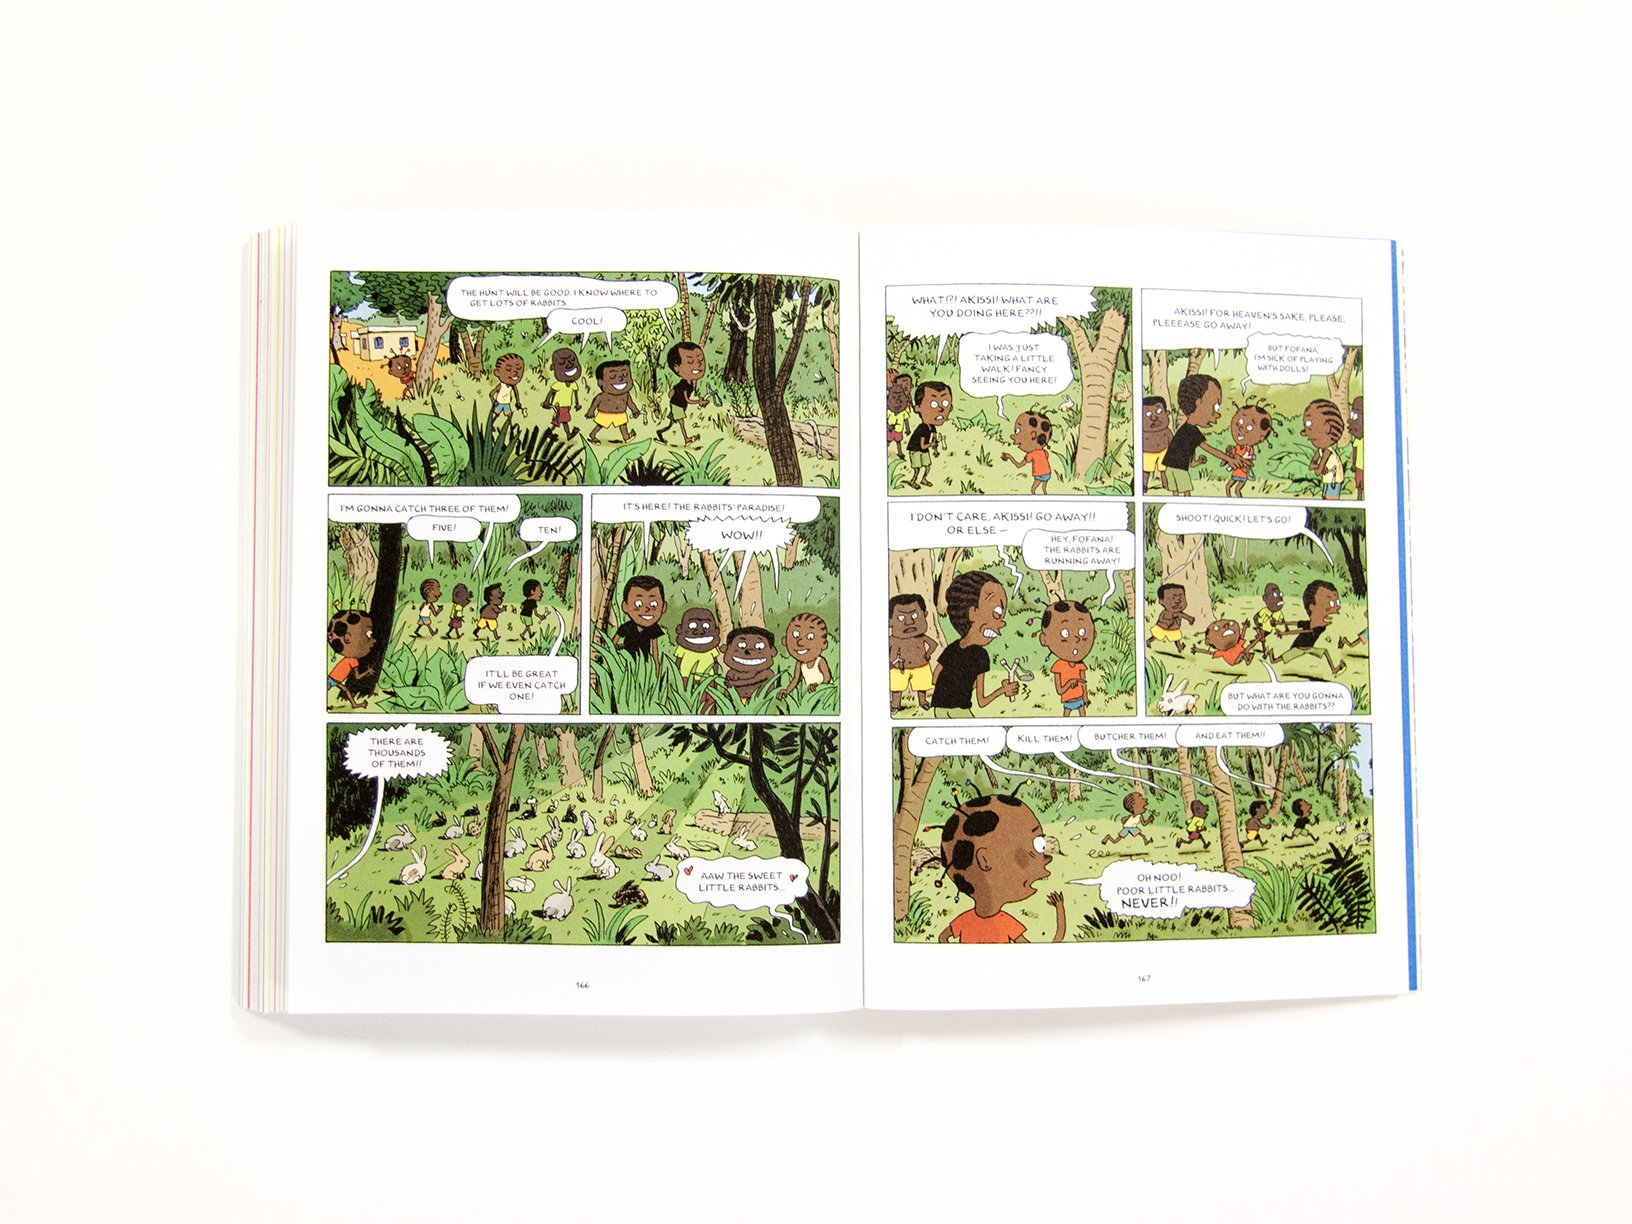 Akissi: Tales of Mischief [Graphic Novel] by Flying Eye Books (Image #13)